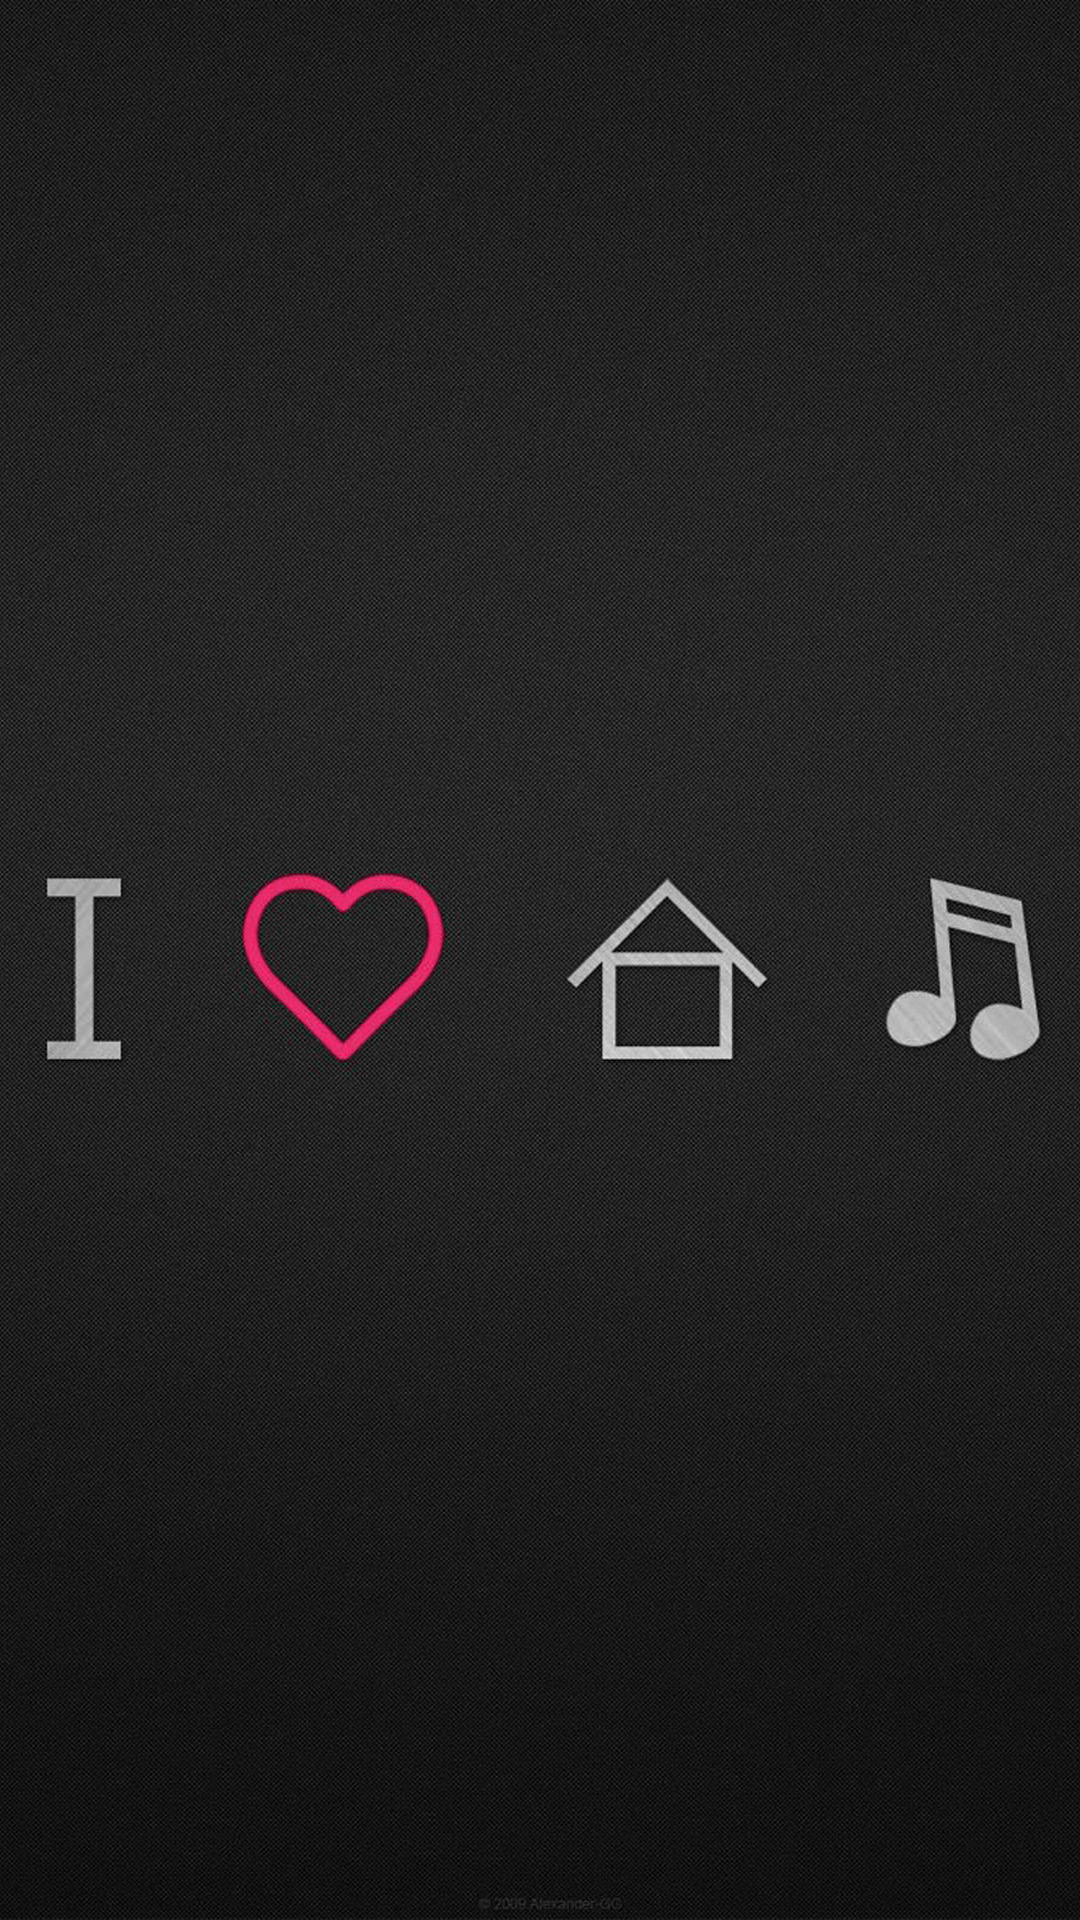 Cute Trendy Wallpapers Quotes 73 Music Iphone Wallpapers For The Music Lovers